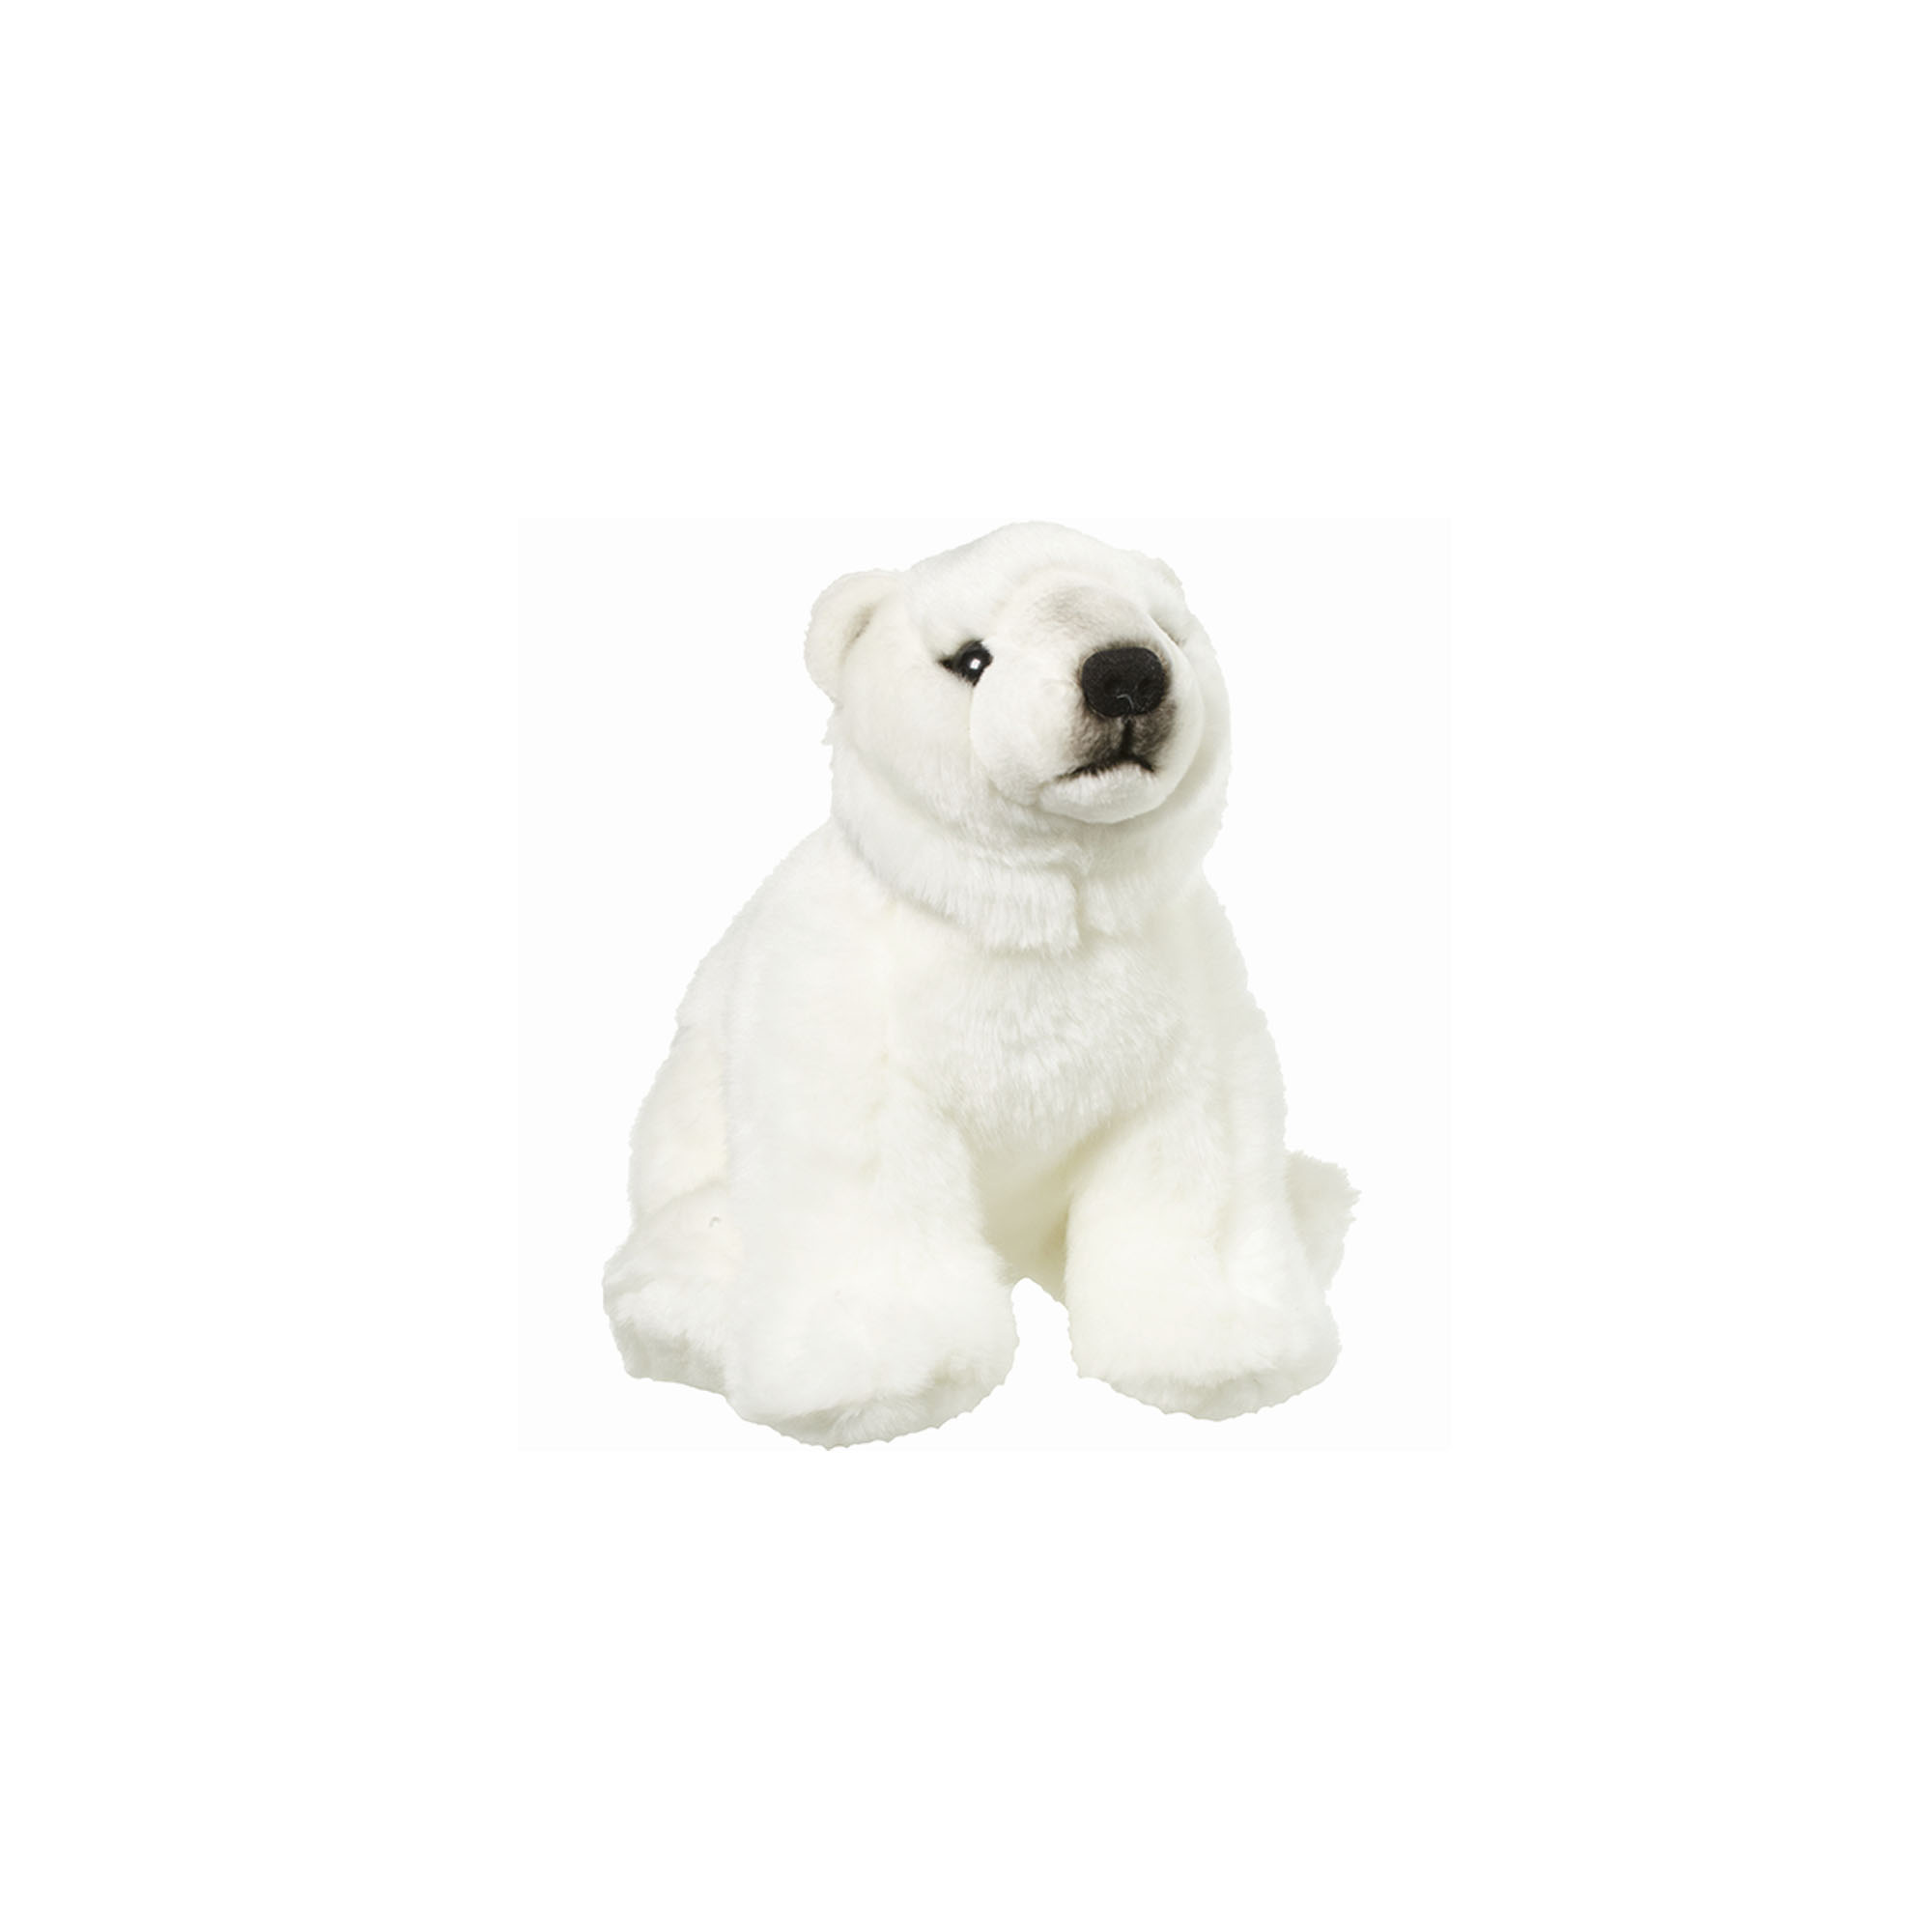 Polar Bear Soft Toy, Available in two sizes